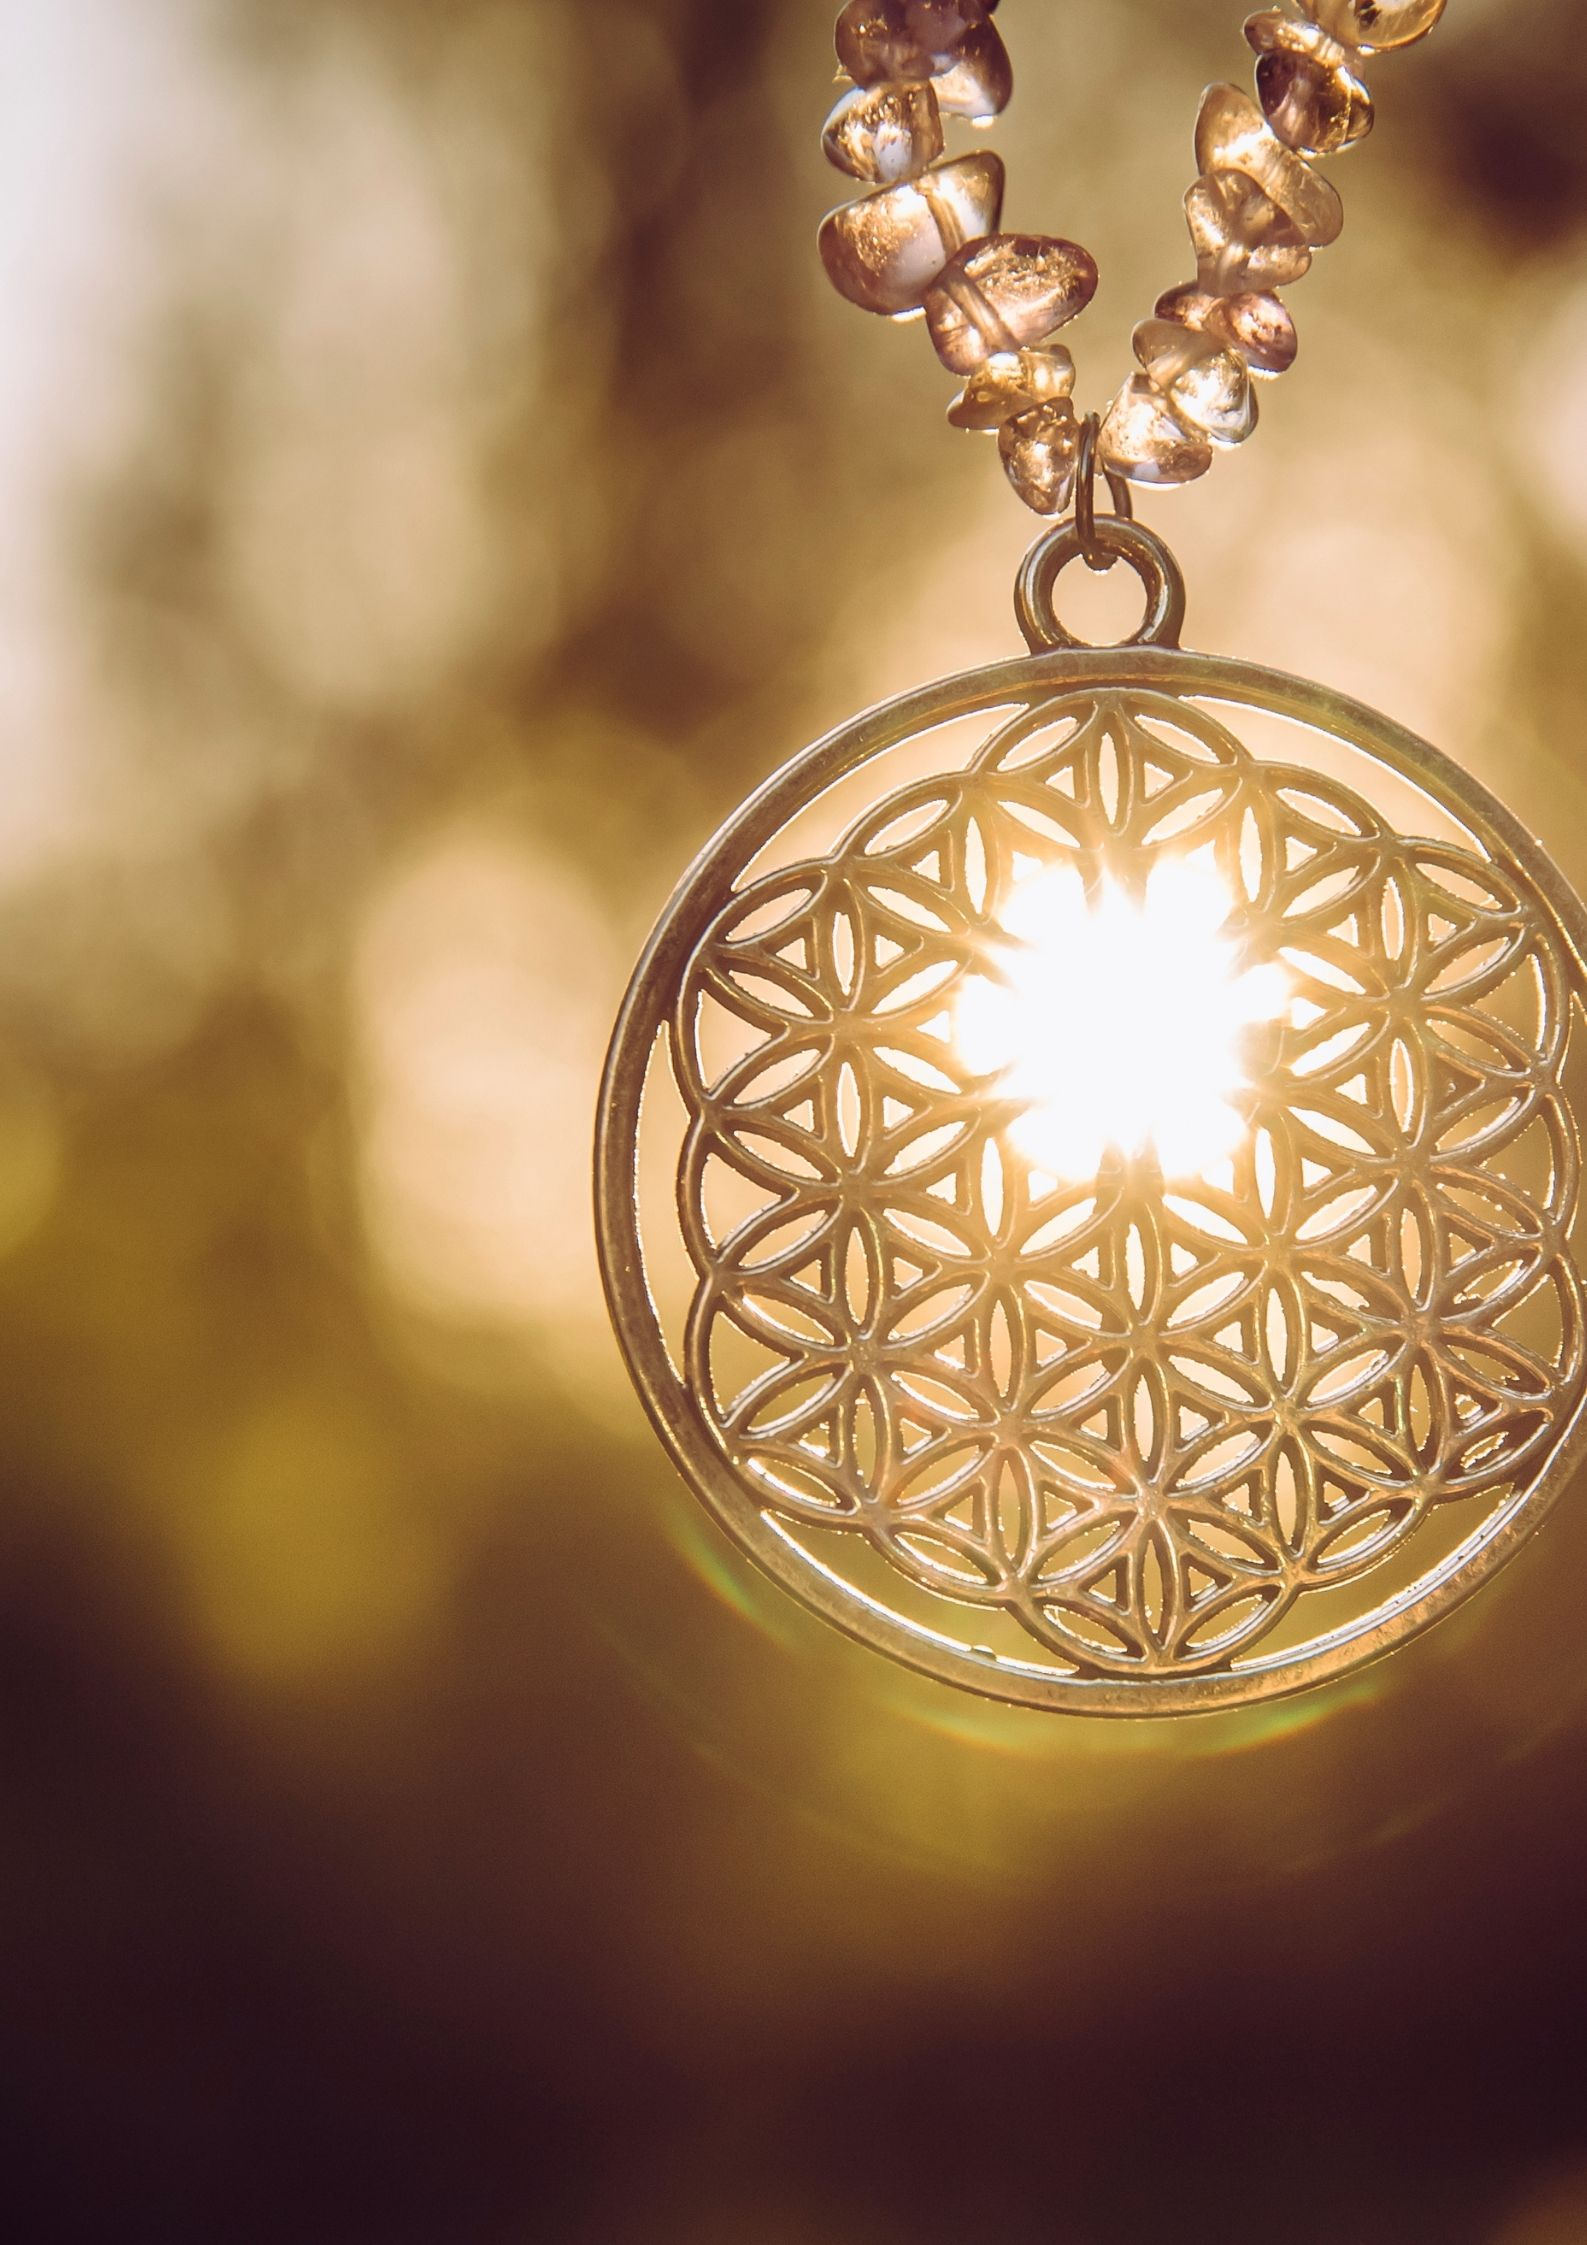 what is the flower of life symbol